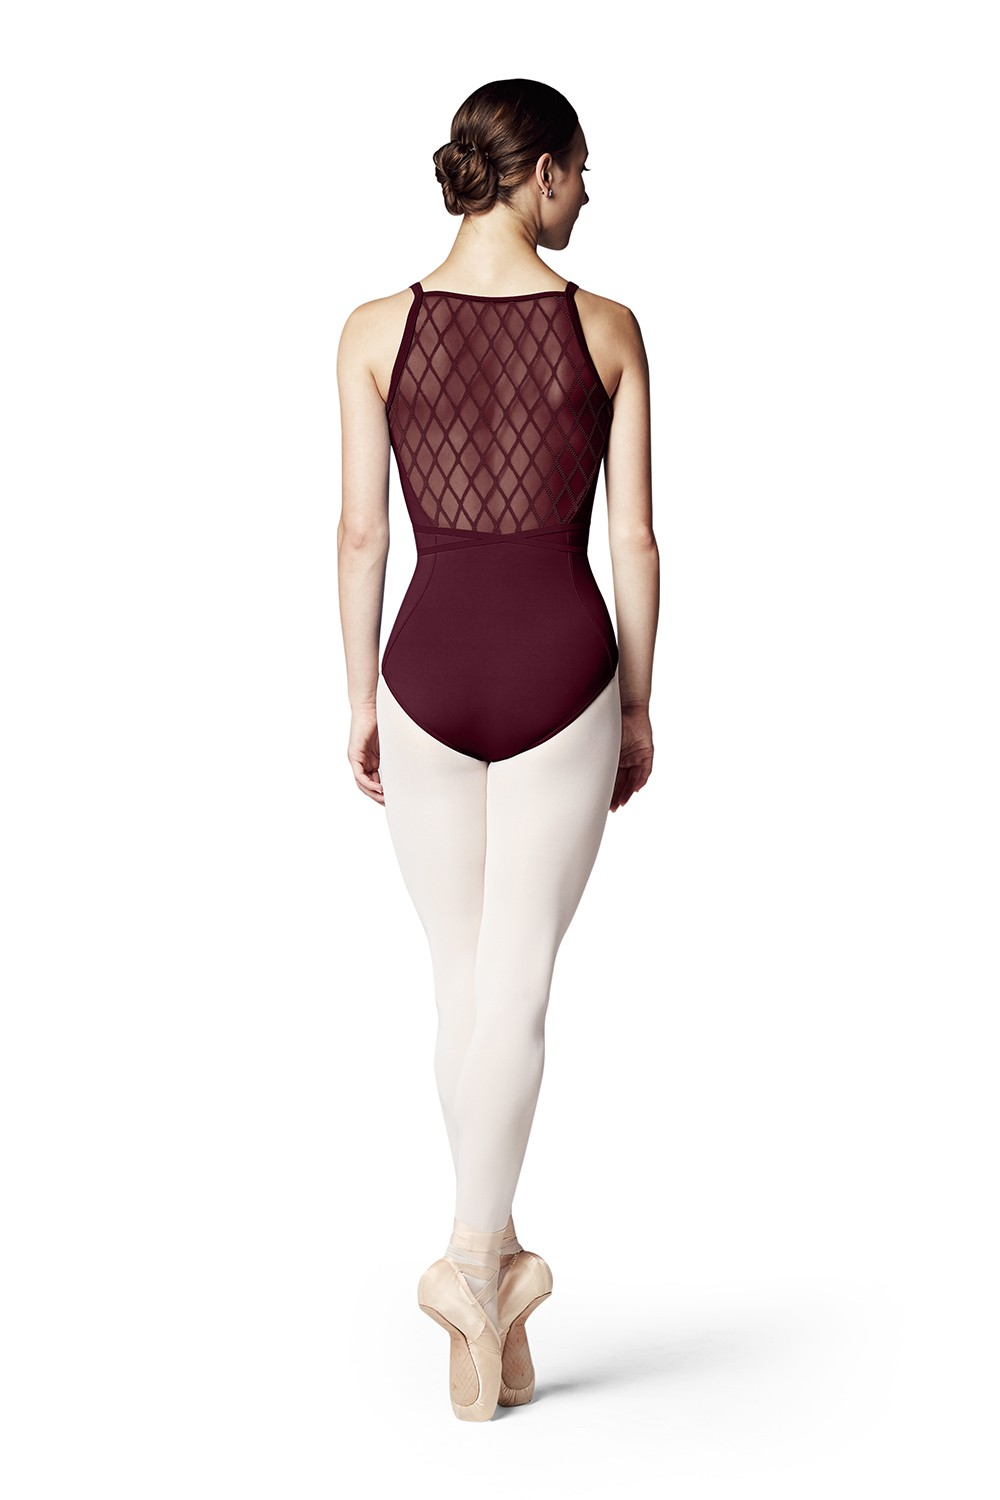 Lexi Women's Dance Leotards